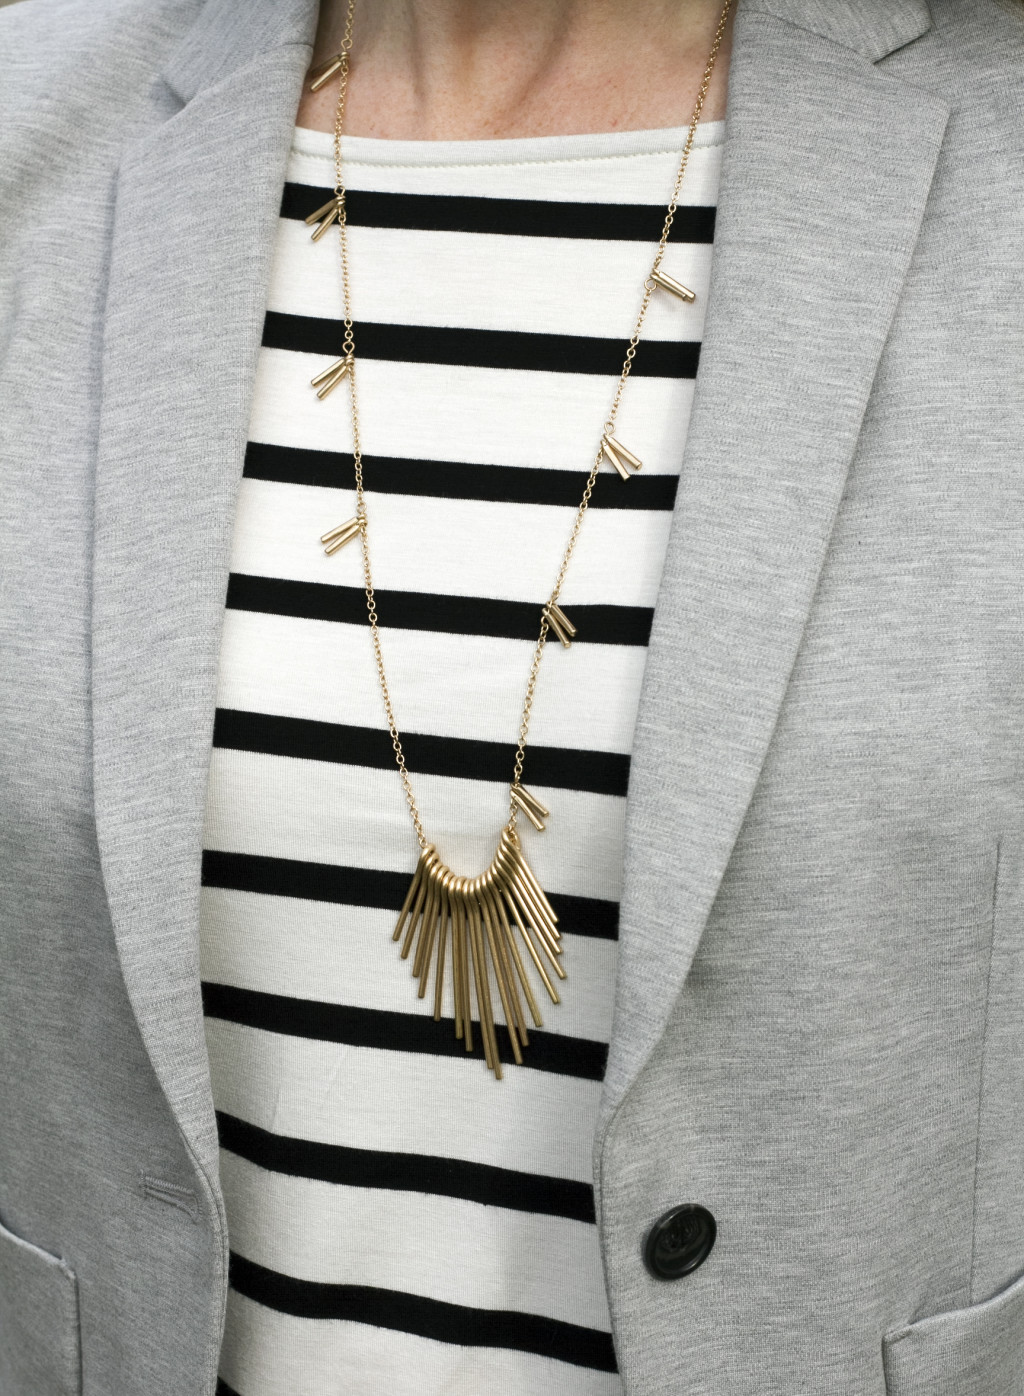 Stitch Fix Necklace